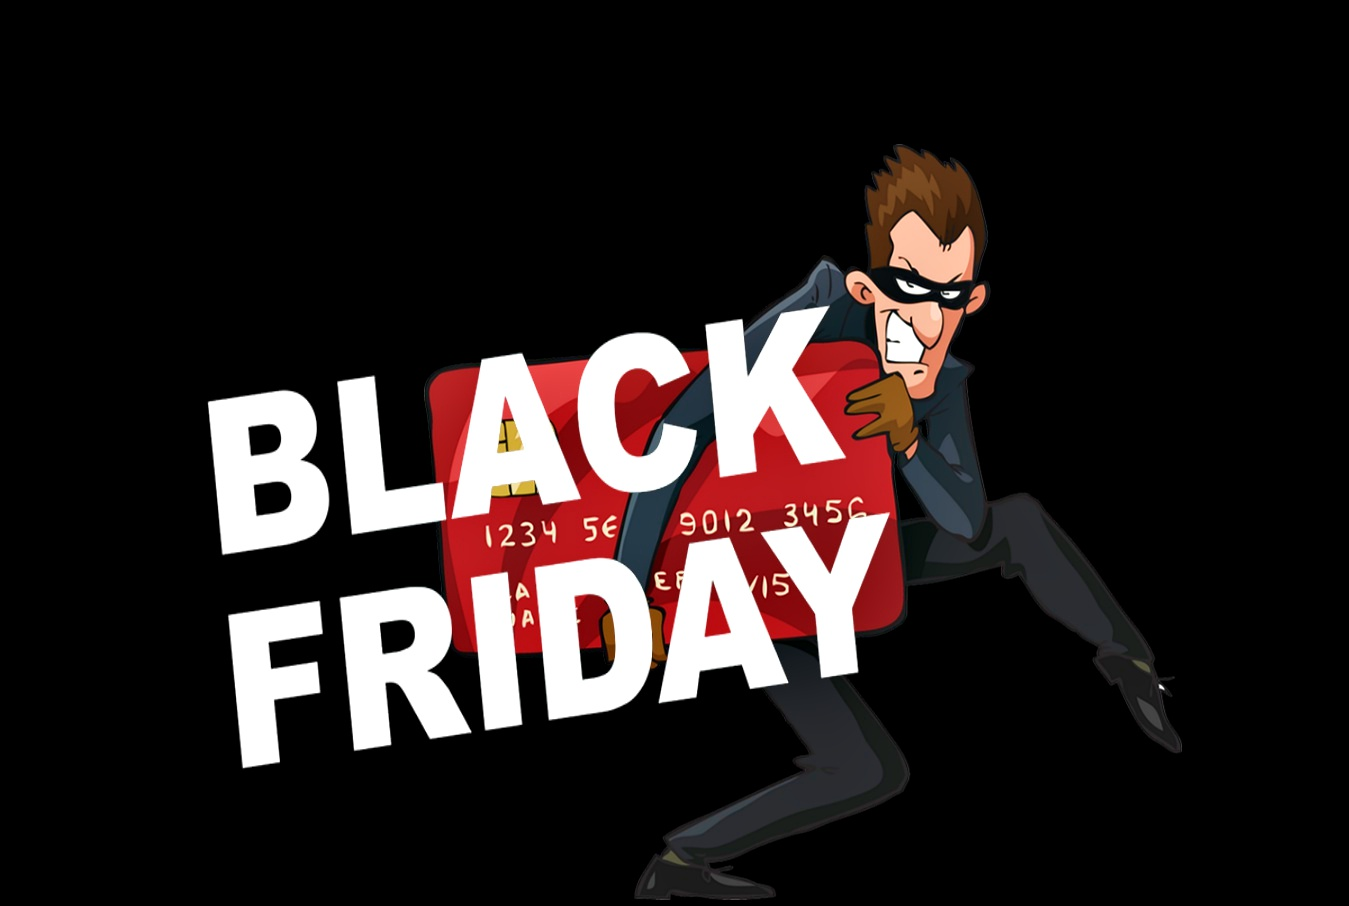 Black Frideay Black Friday Scams Shop Safely With These Tips